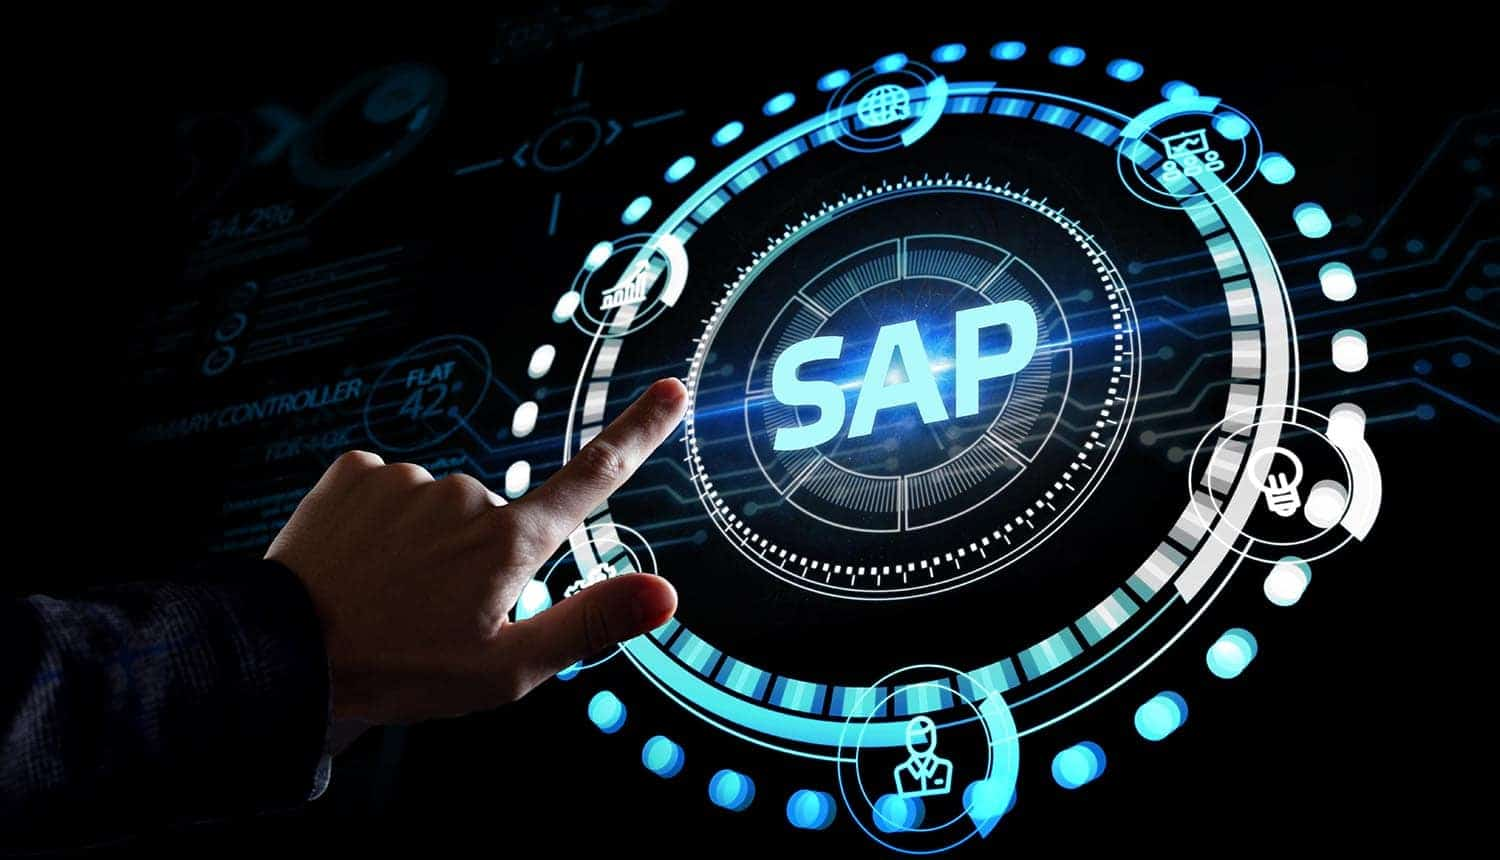 SAP system on virtual screen showing cyber attack on security vulnerabilities